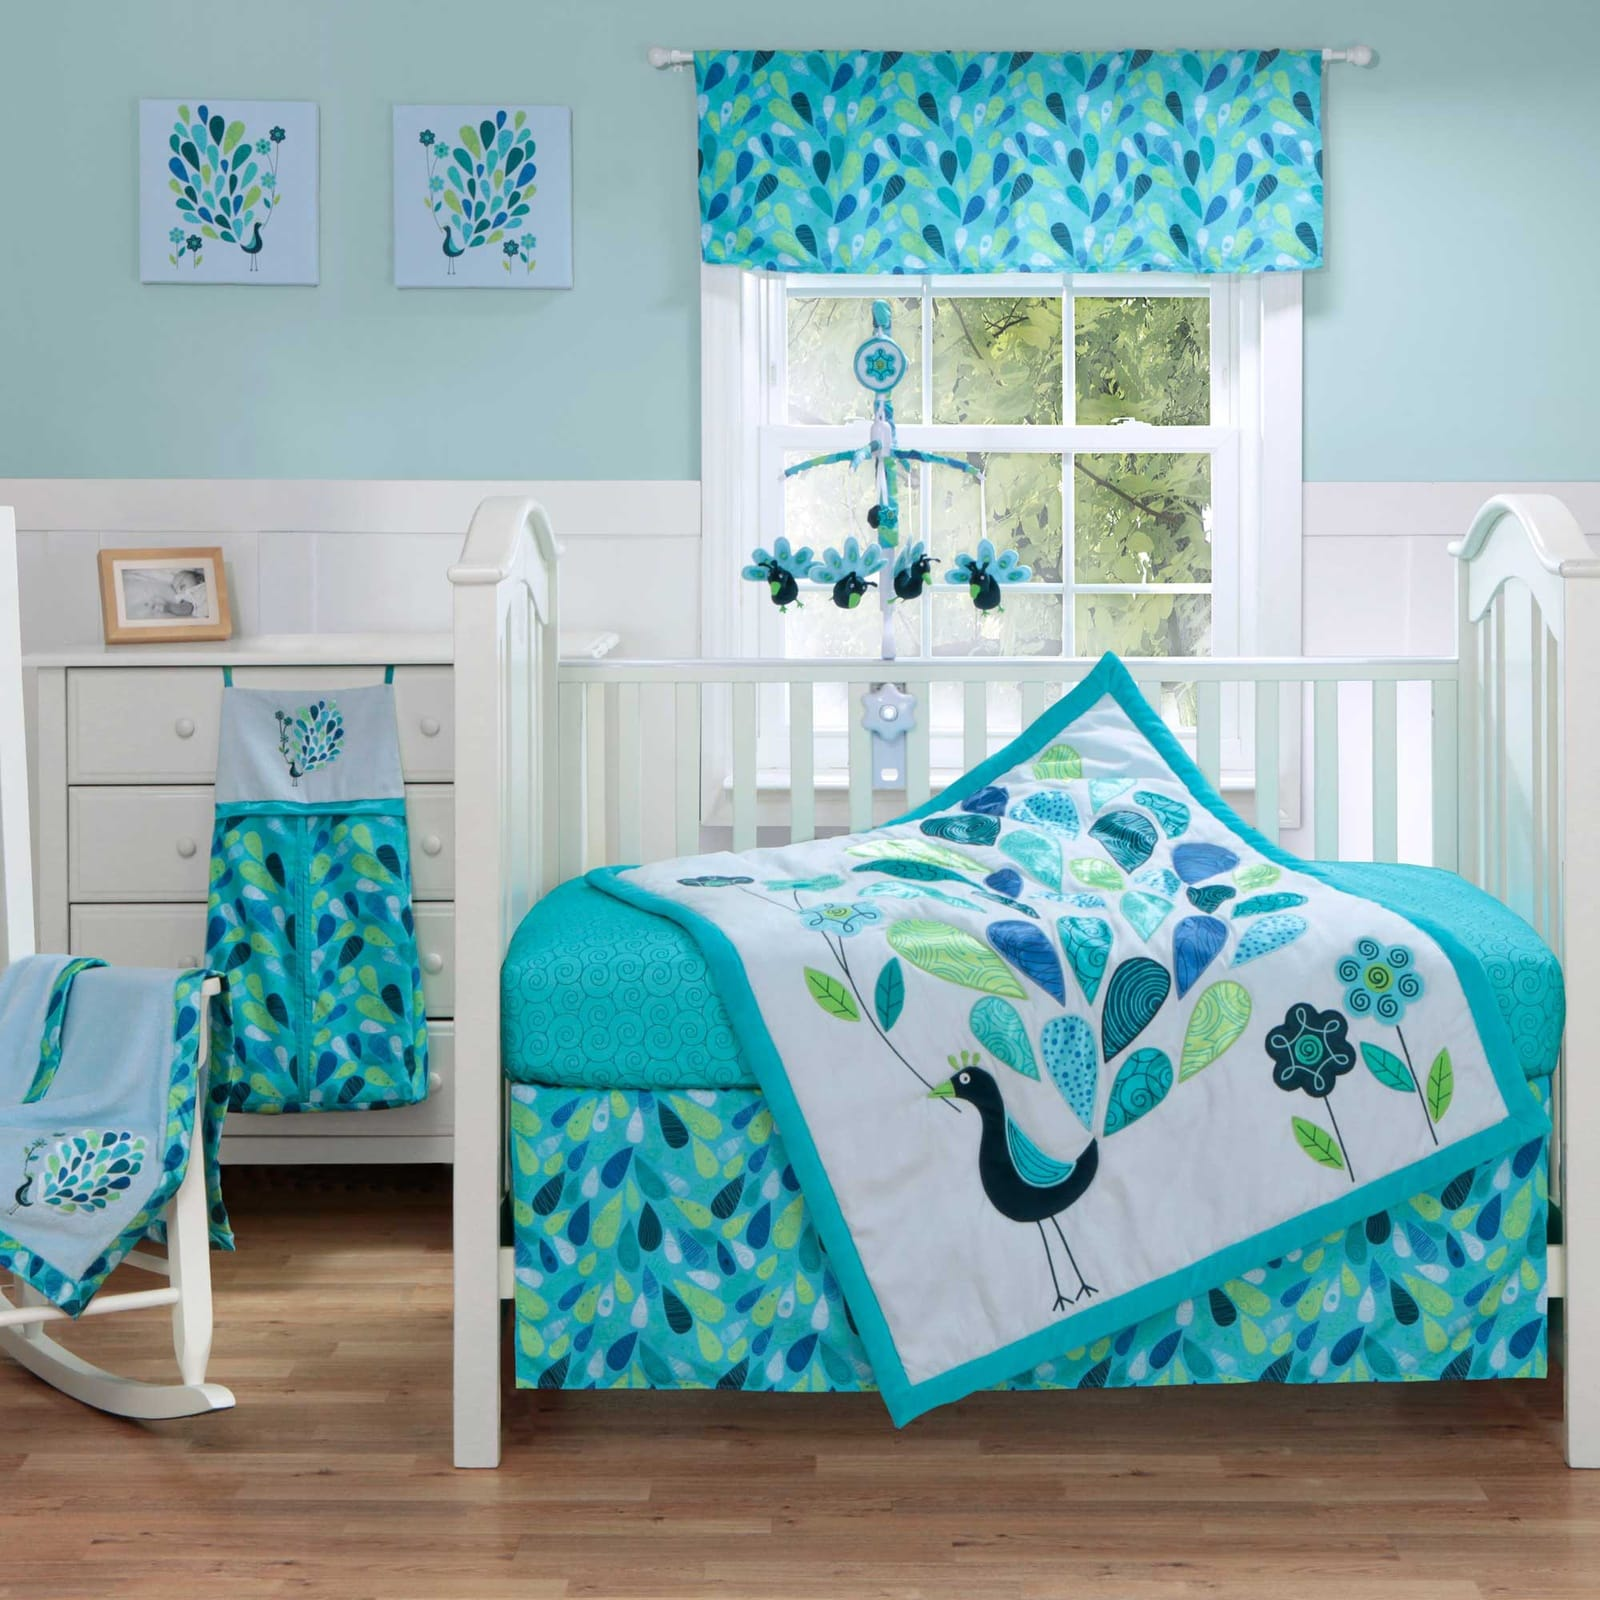 Awesome featherbedding for bedroom with featherbedding definition